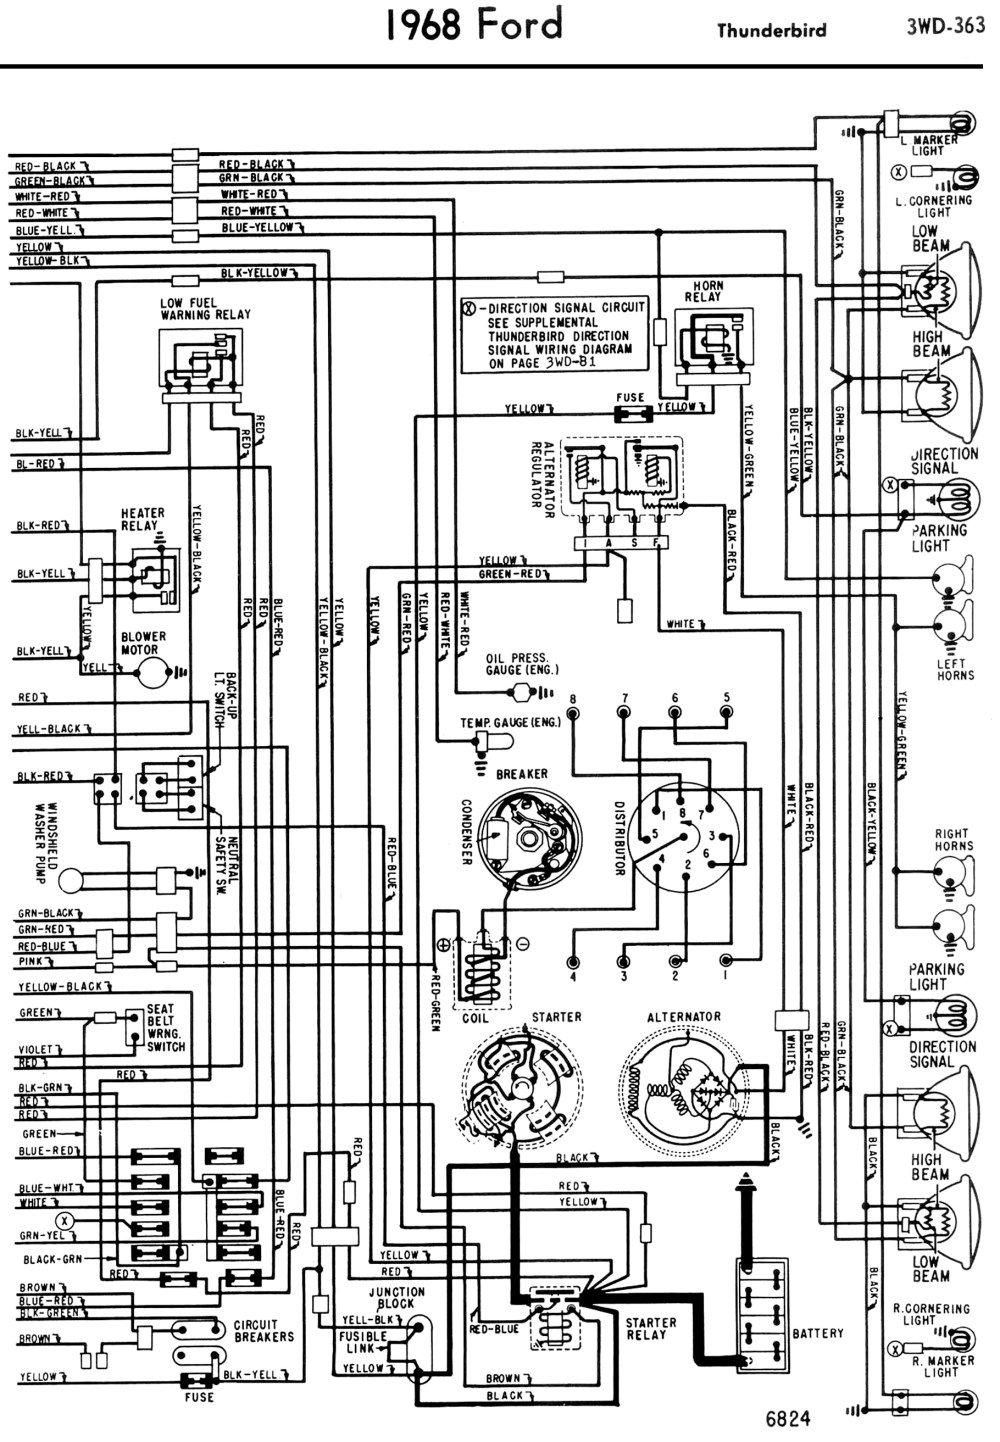 medium resolution of sequential tail light wiring diagram get free image 1968 impala kickdown wiring diagram 1968 impala